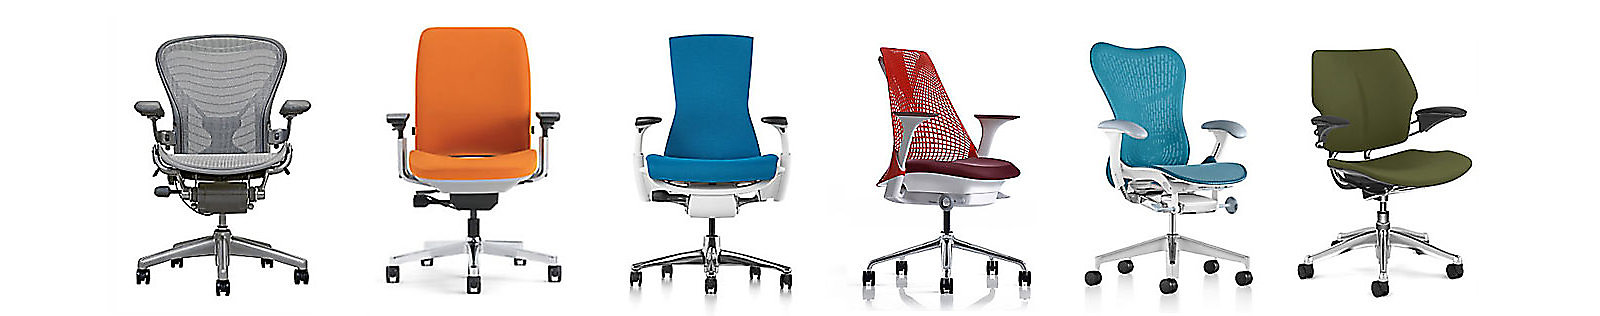 Best Office Chairs Lineup